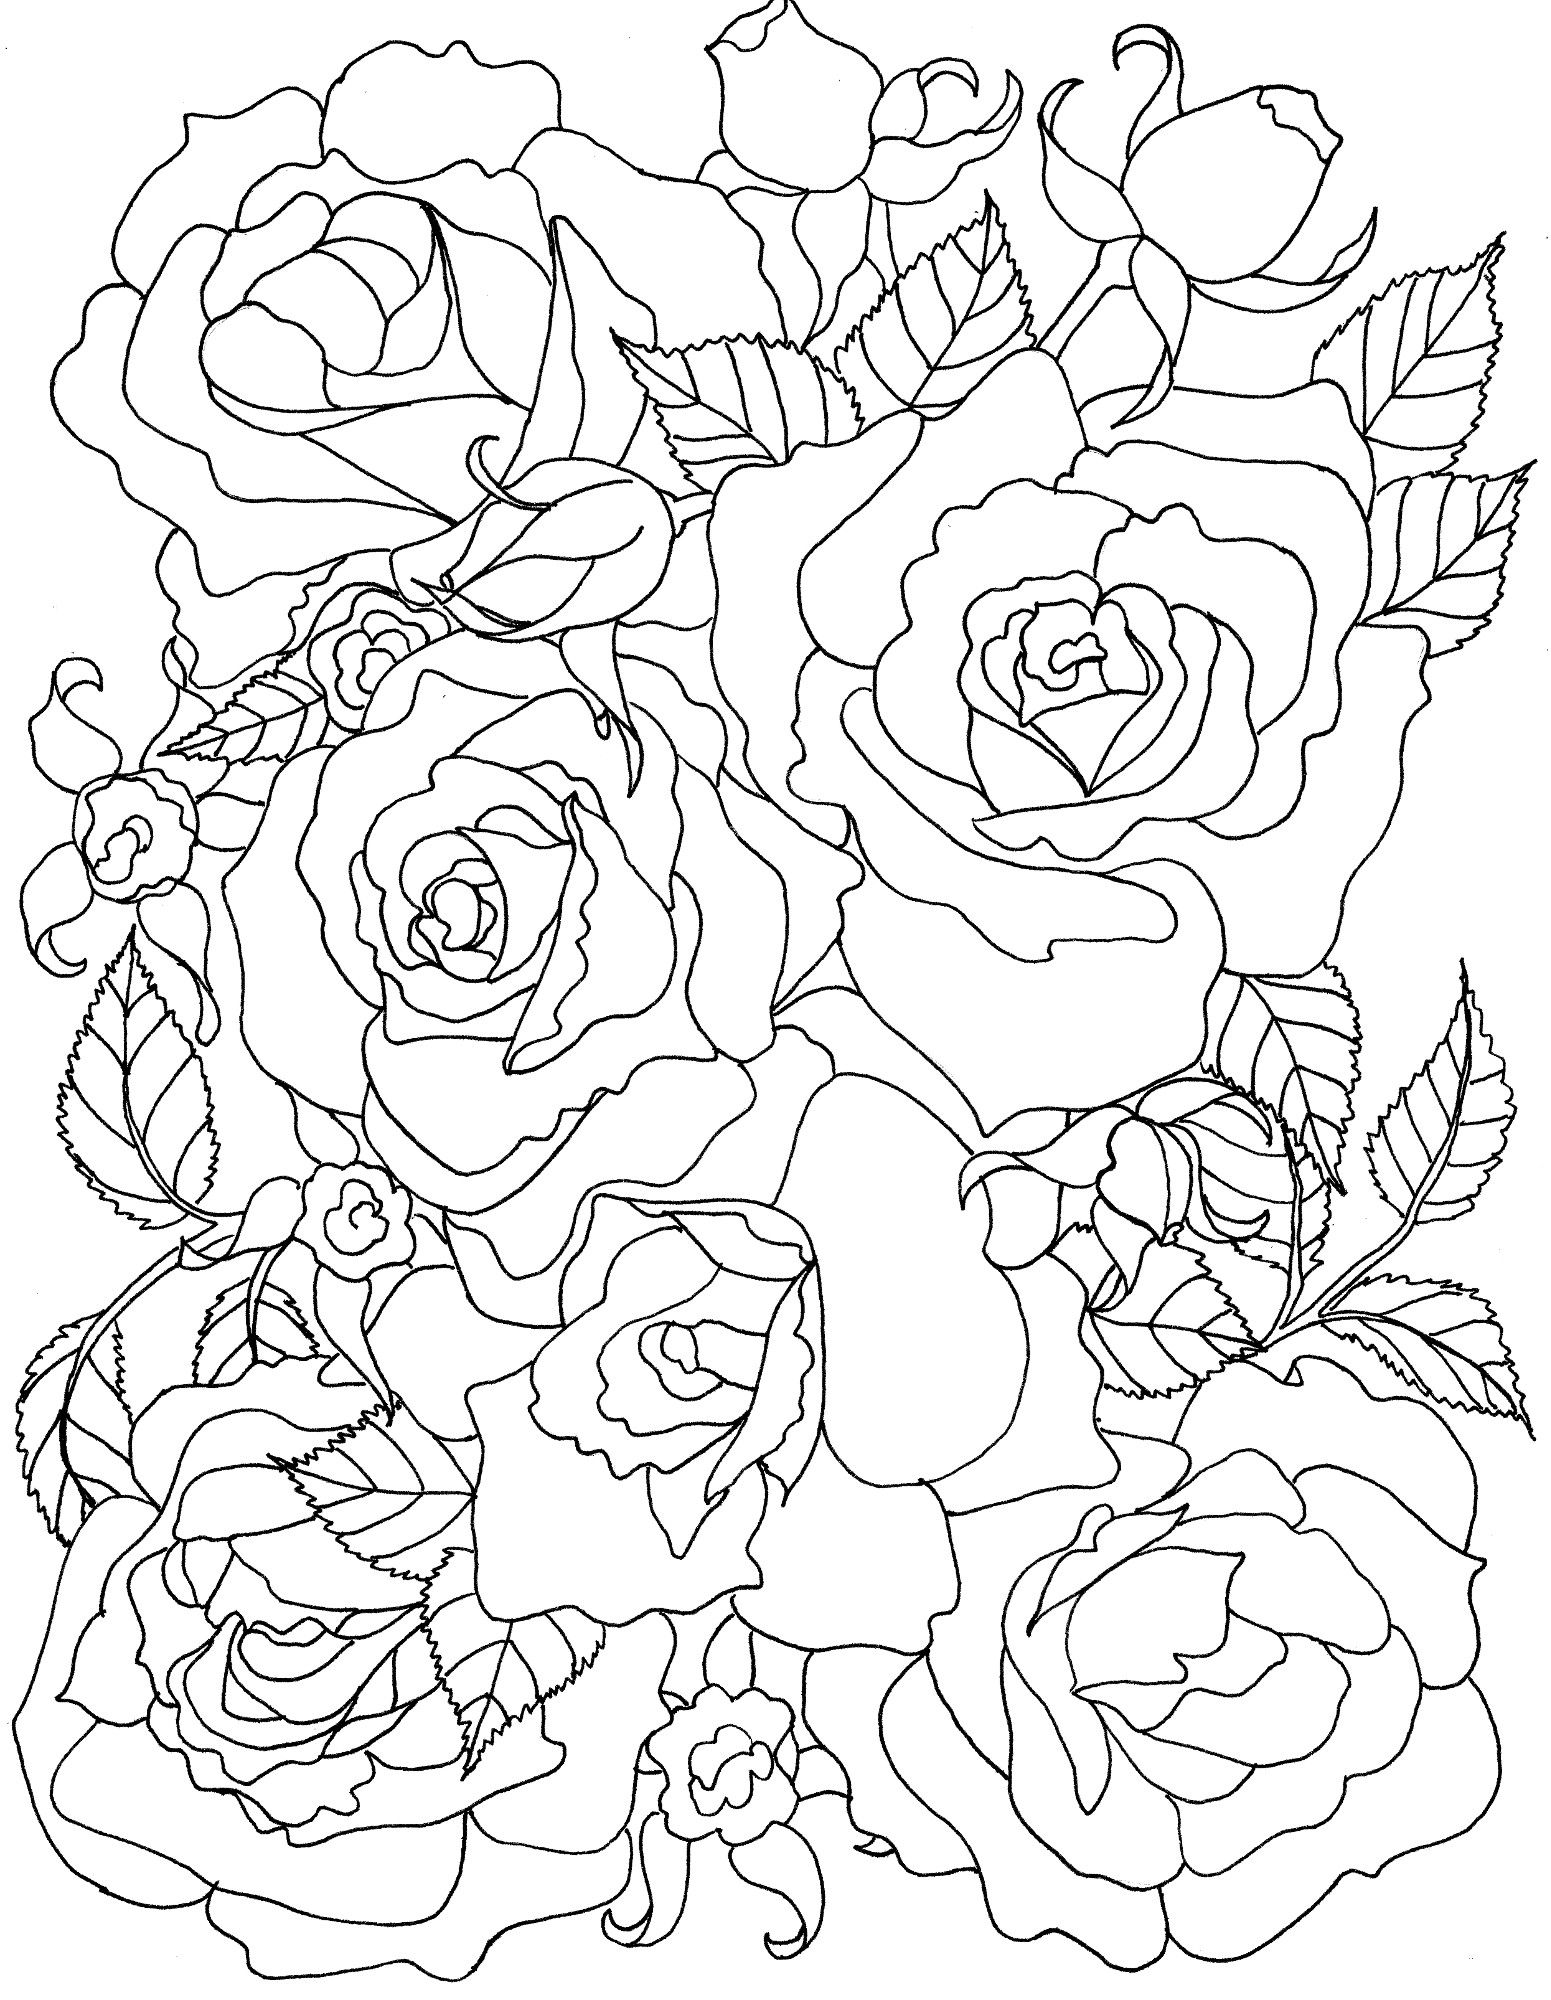 Happy Family Art Original And Fun Coloring Pages Rose Coloring Pages Mandala Coloring Pages Printable Flower Coloring Pages